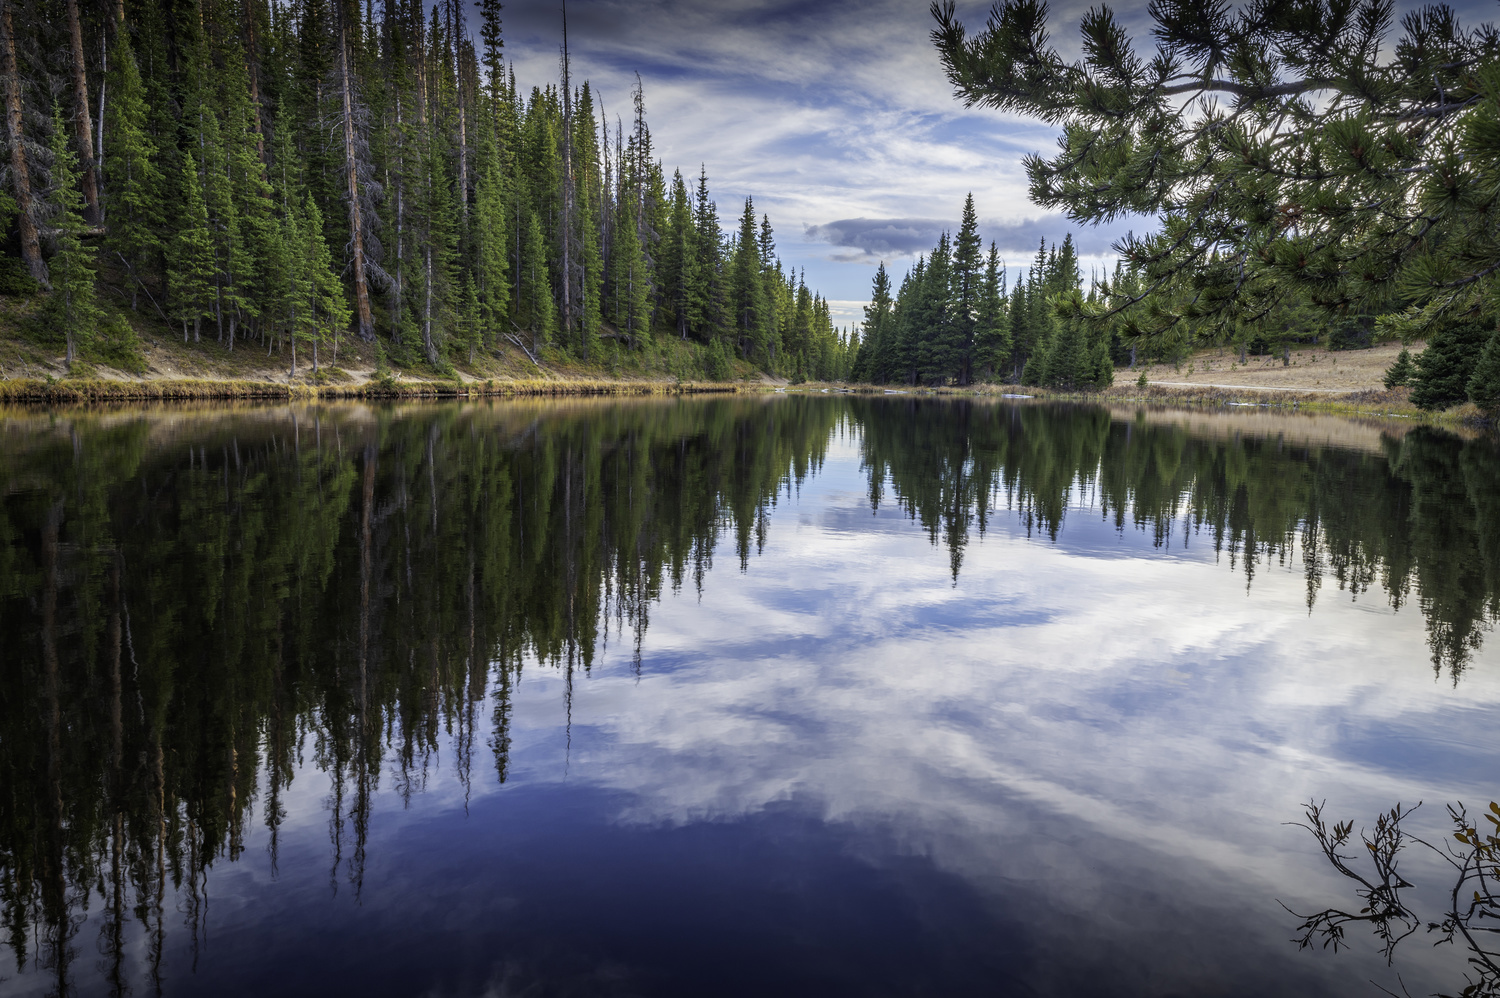 Lake Irene Rocky Mountain National Park by Dave Spates